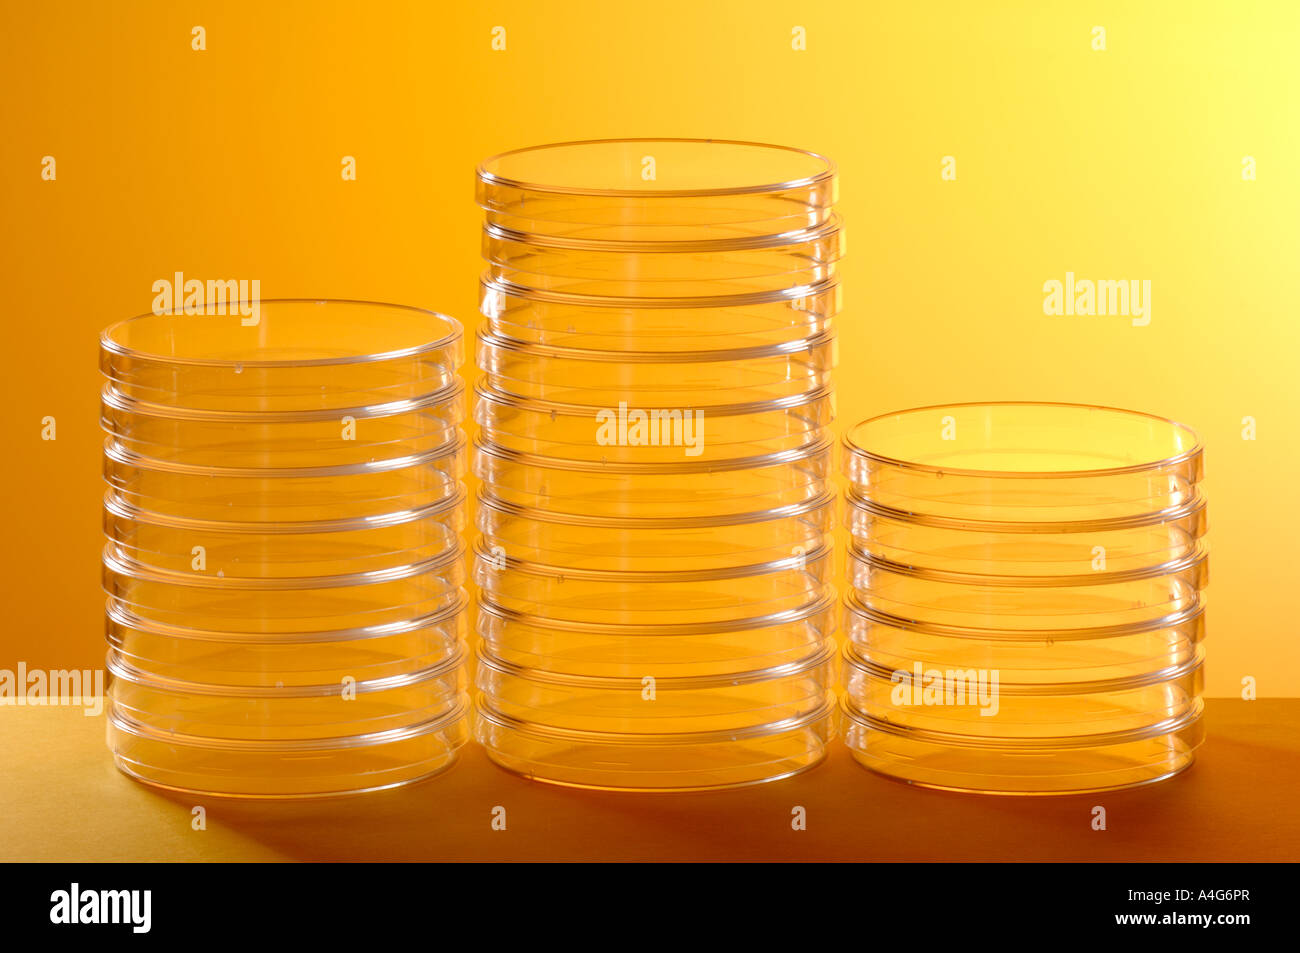 Scientific petri dishes - Stock Image